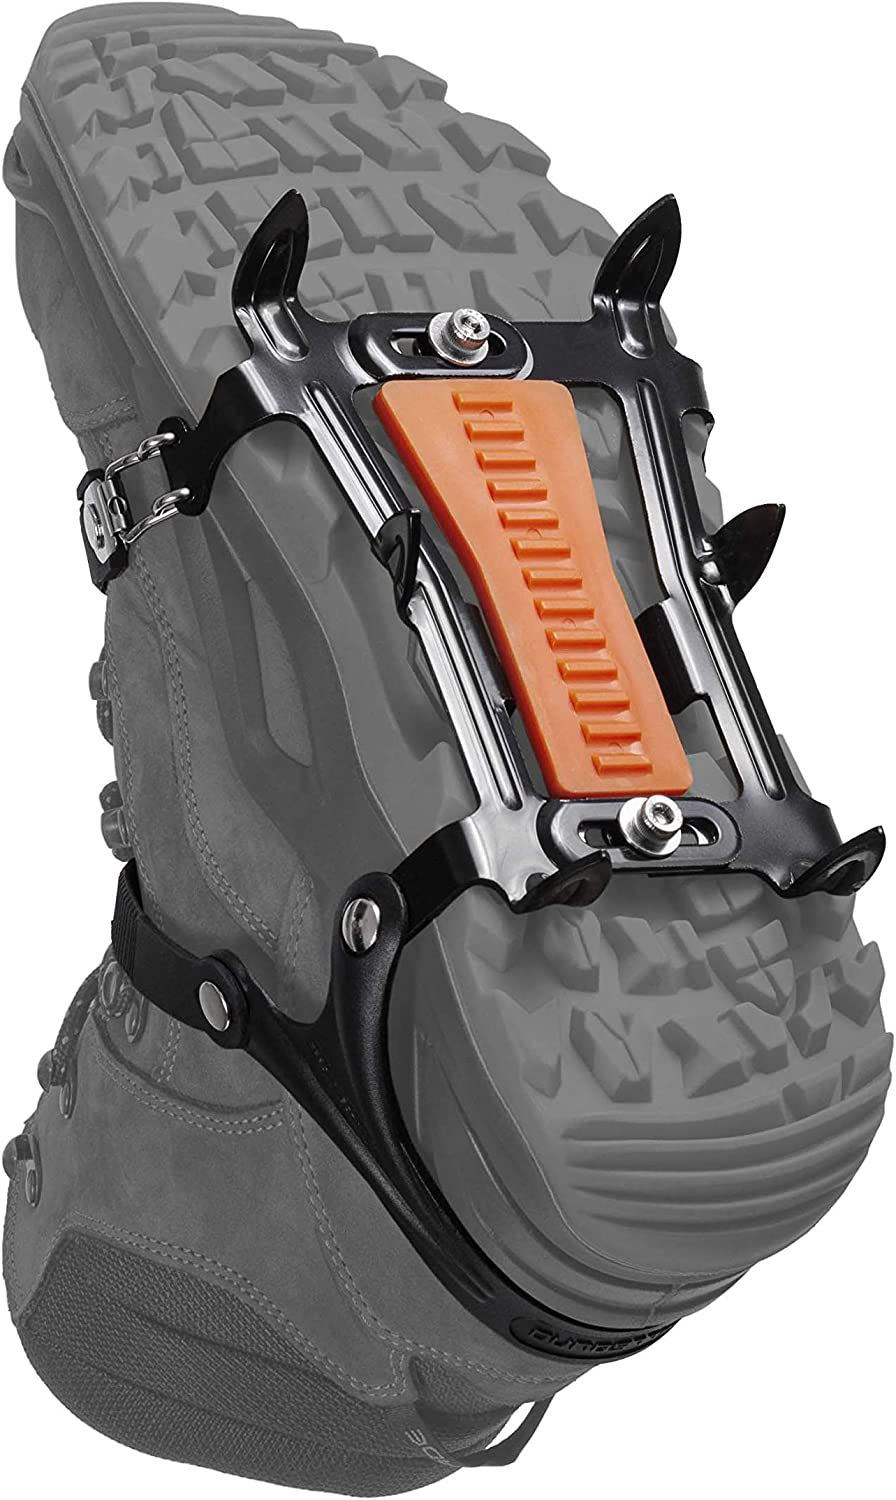 Hillsound Cypress6 - Ice Traction Device/Crampons, 6 Carbon Steel Spikes, 2 Year Warranty